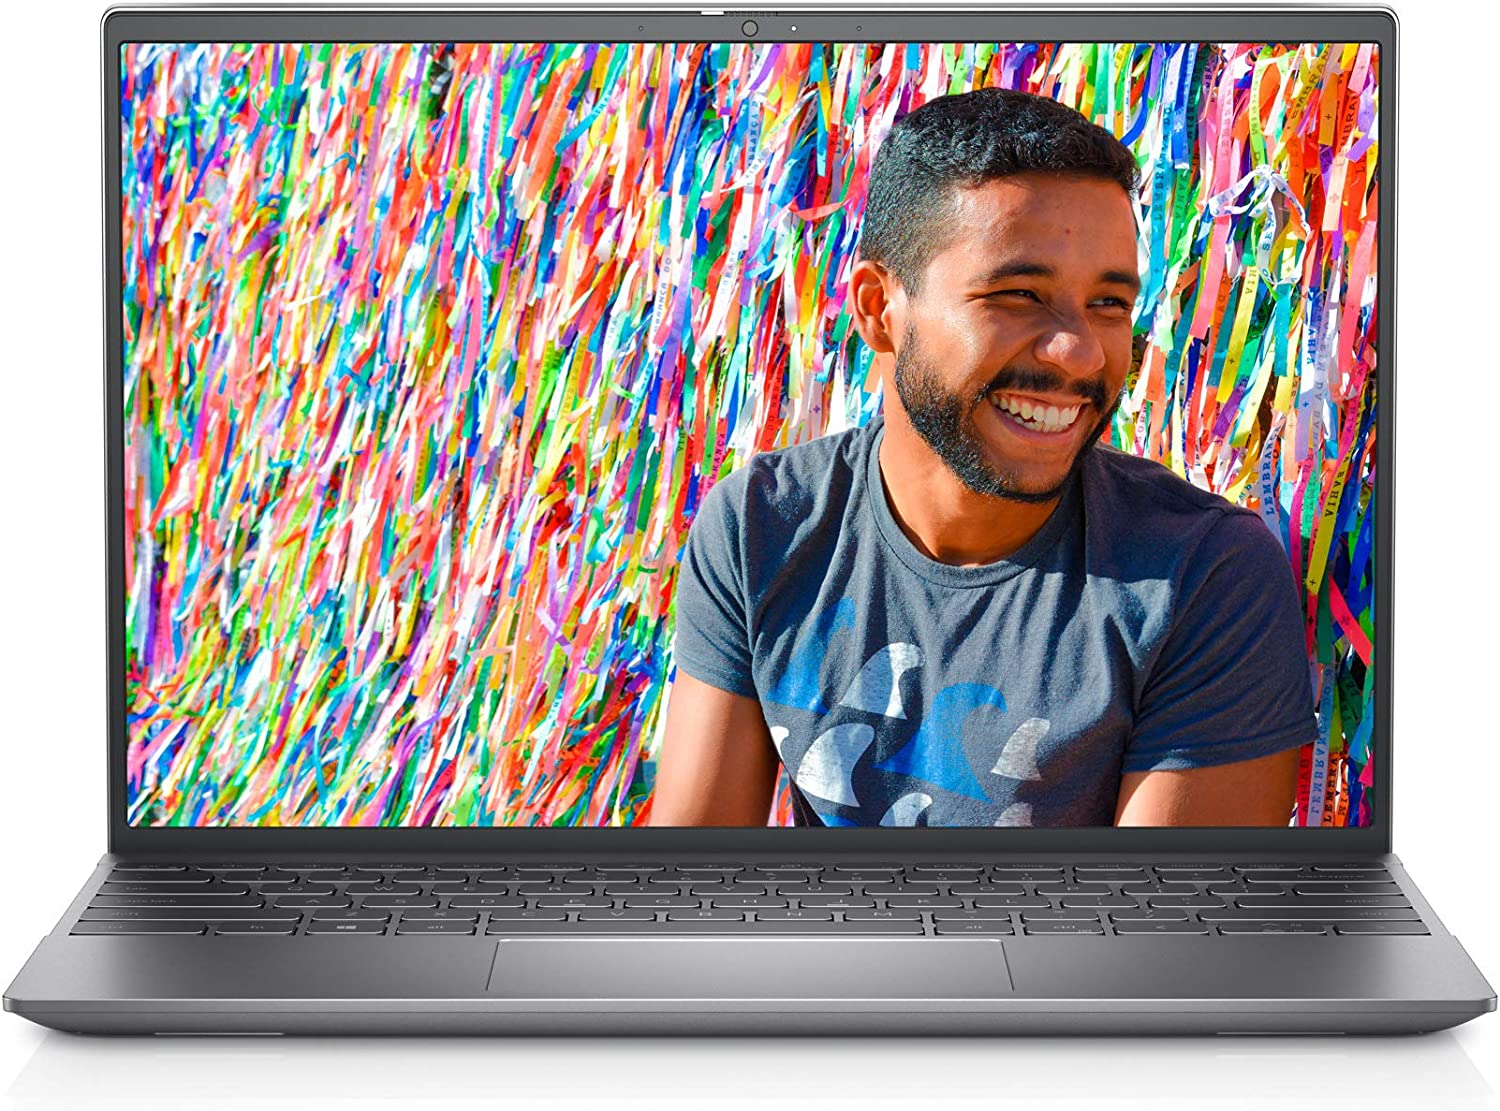 Dell Inspiron 13 5310, 13.3 Inch QHD (Quad High Definition) Non-Touch Laptop - Intel Core i7-11370H, 16GB DDR4 RAM, 512GB SSD, NVIDIA GeForce MX450 with 2GB GDDR6, Platinum Silver (Latest Model)